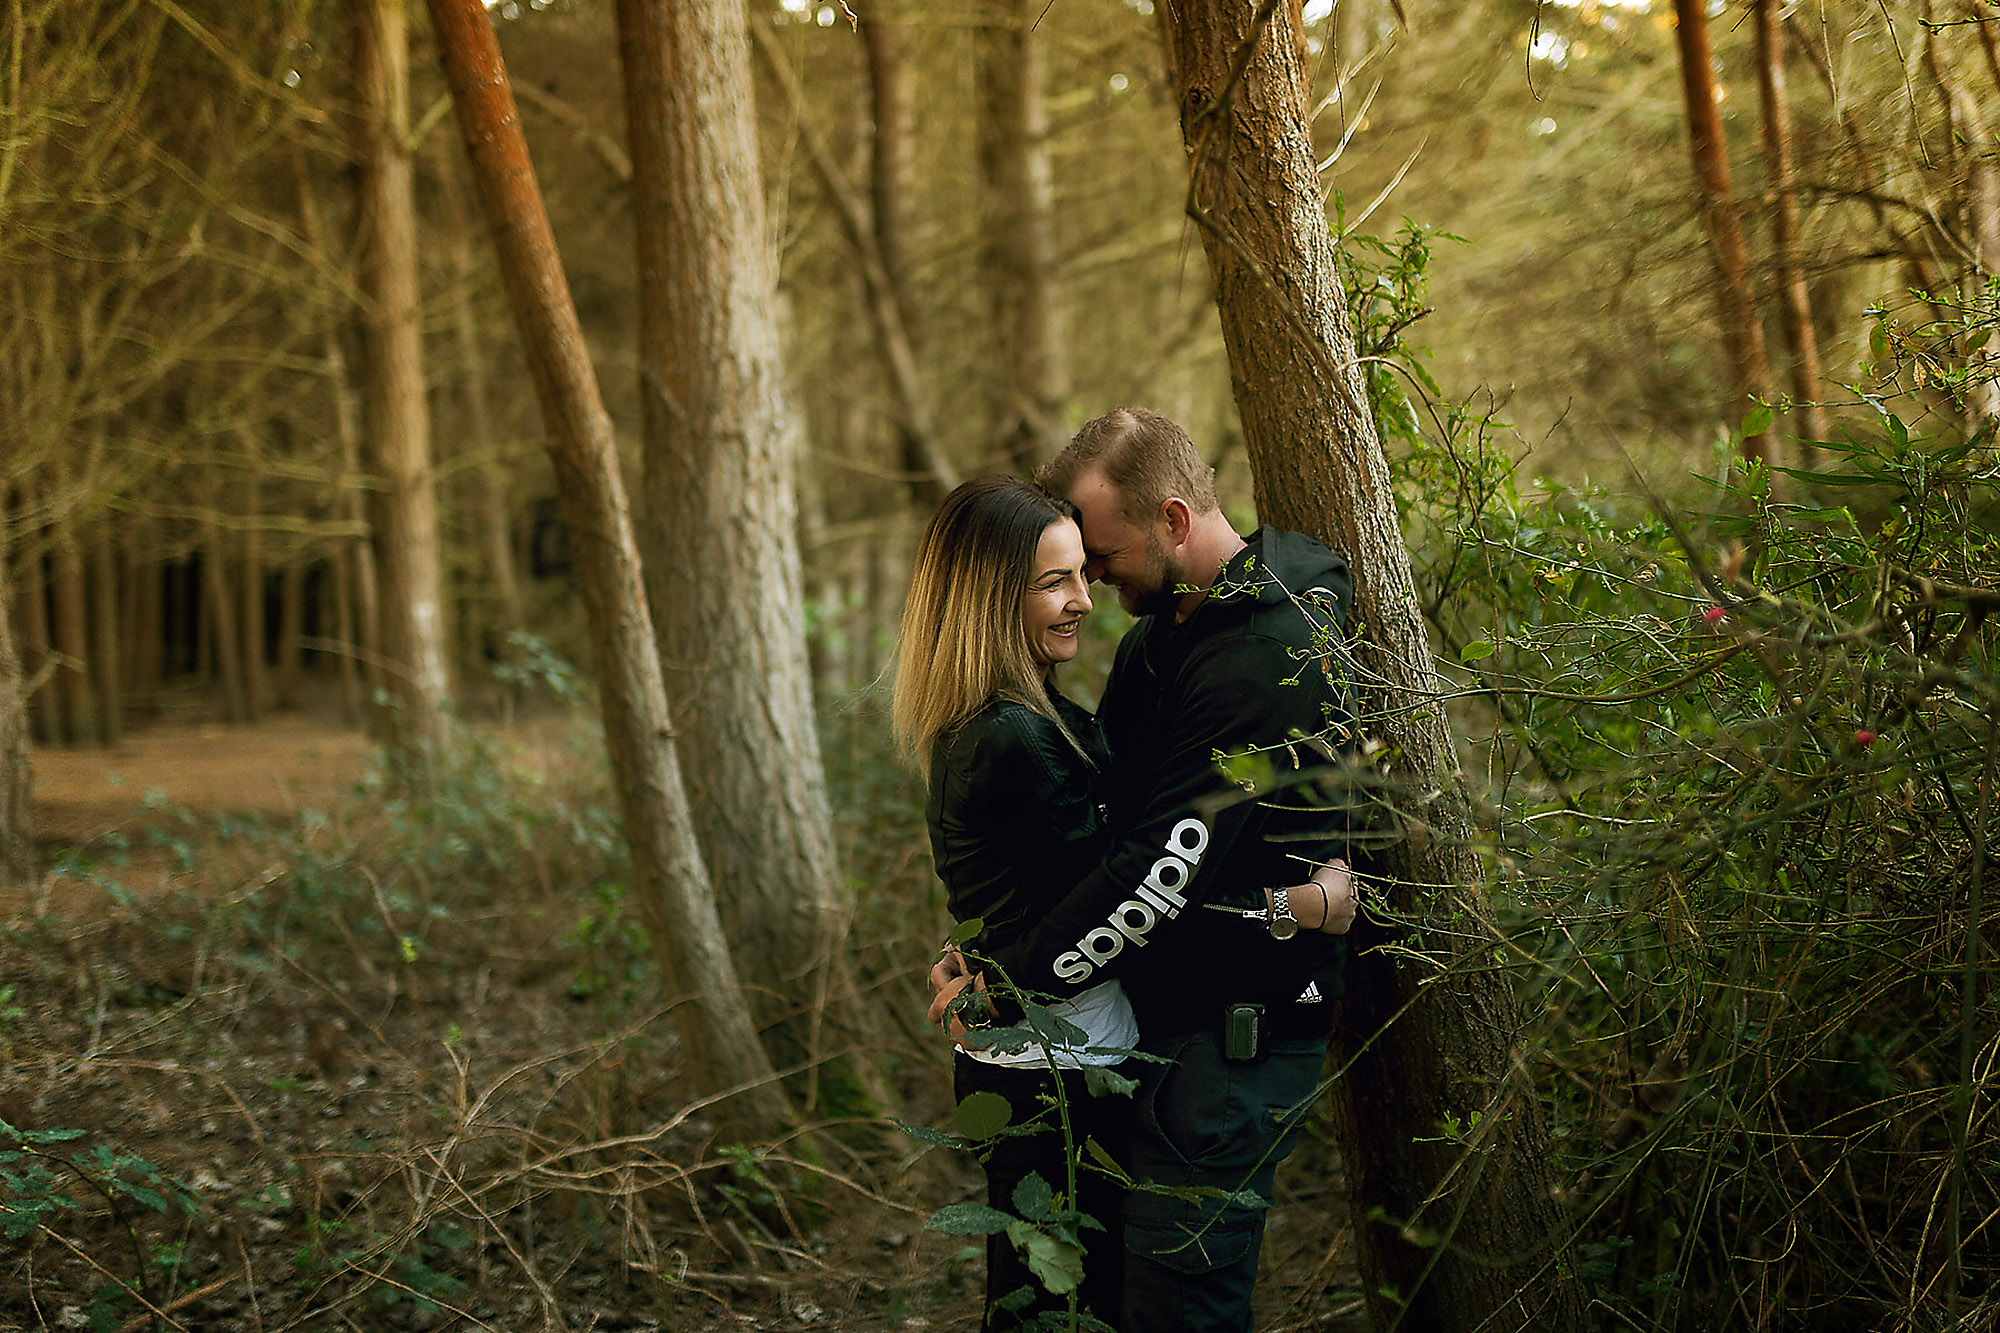 Engagement & Couples photographer in Christchurch couple laughing in the forest bottle lake forest